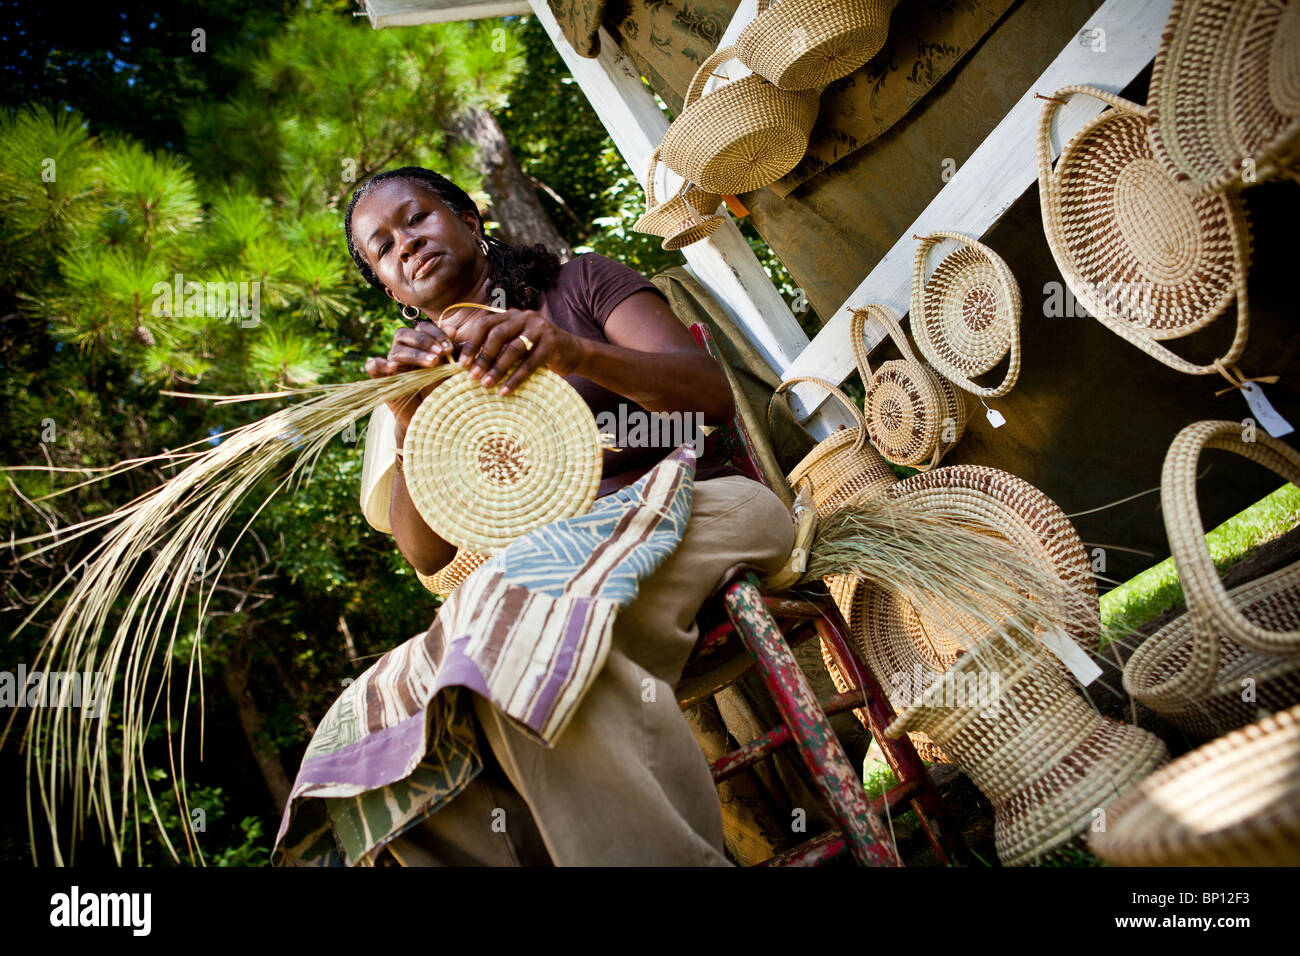 Barbara Manigault, a Gullah sweet grass basket weaver at her stand in Mt Pleasant, SC. Stock Photo